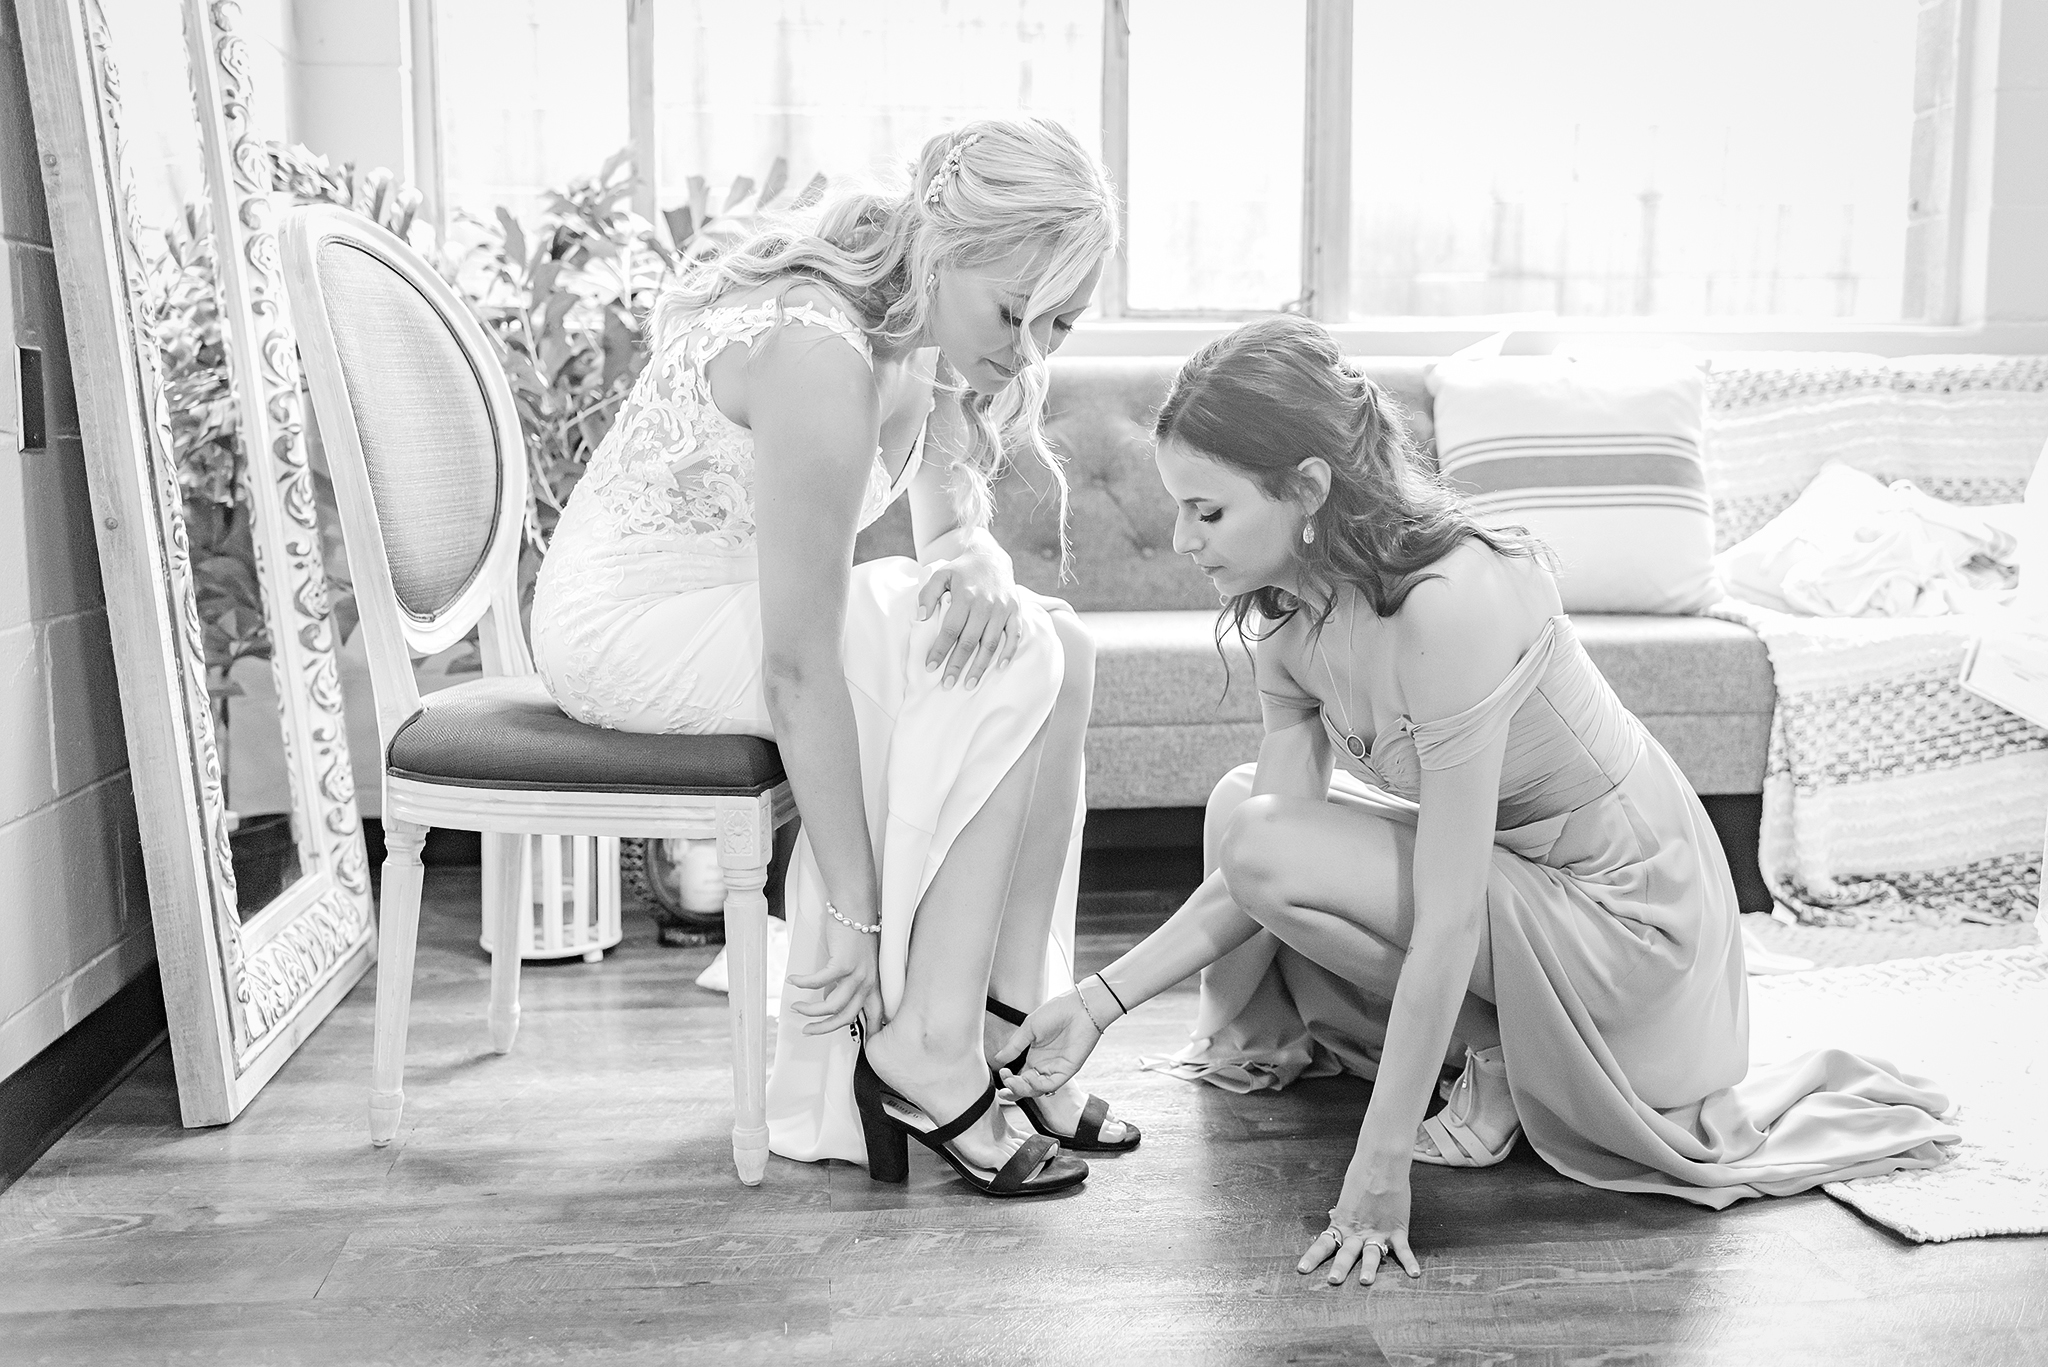 Lindsay-Adkins-Photography-Michigan-Wedding-Photographer-Tecumseh-Michigan-9b